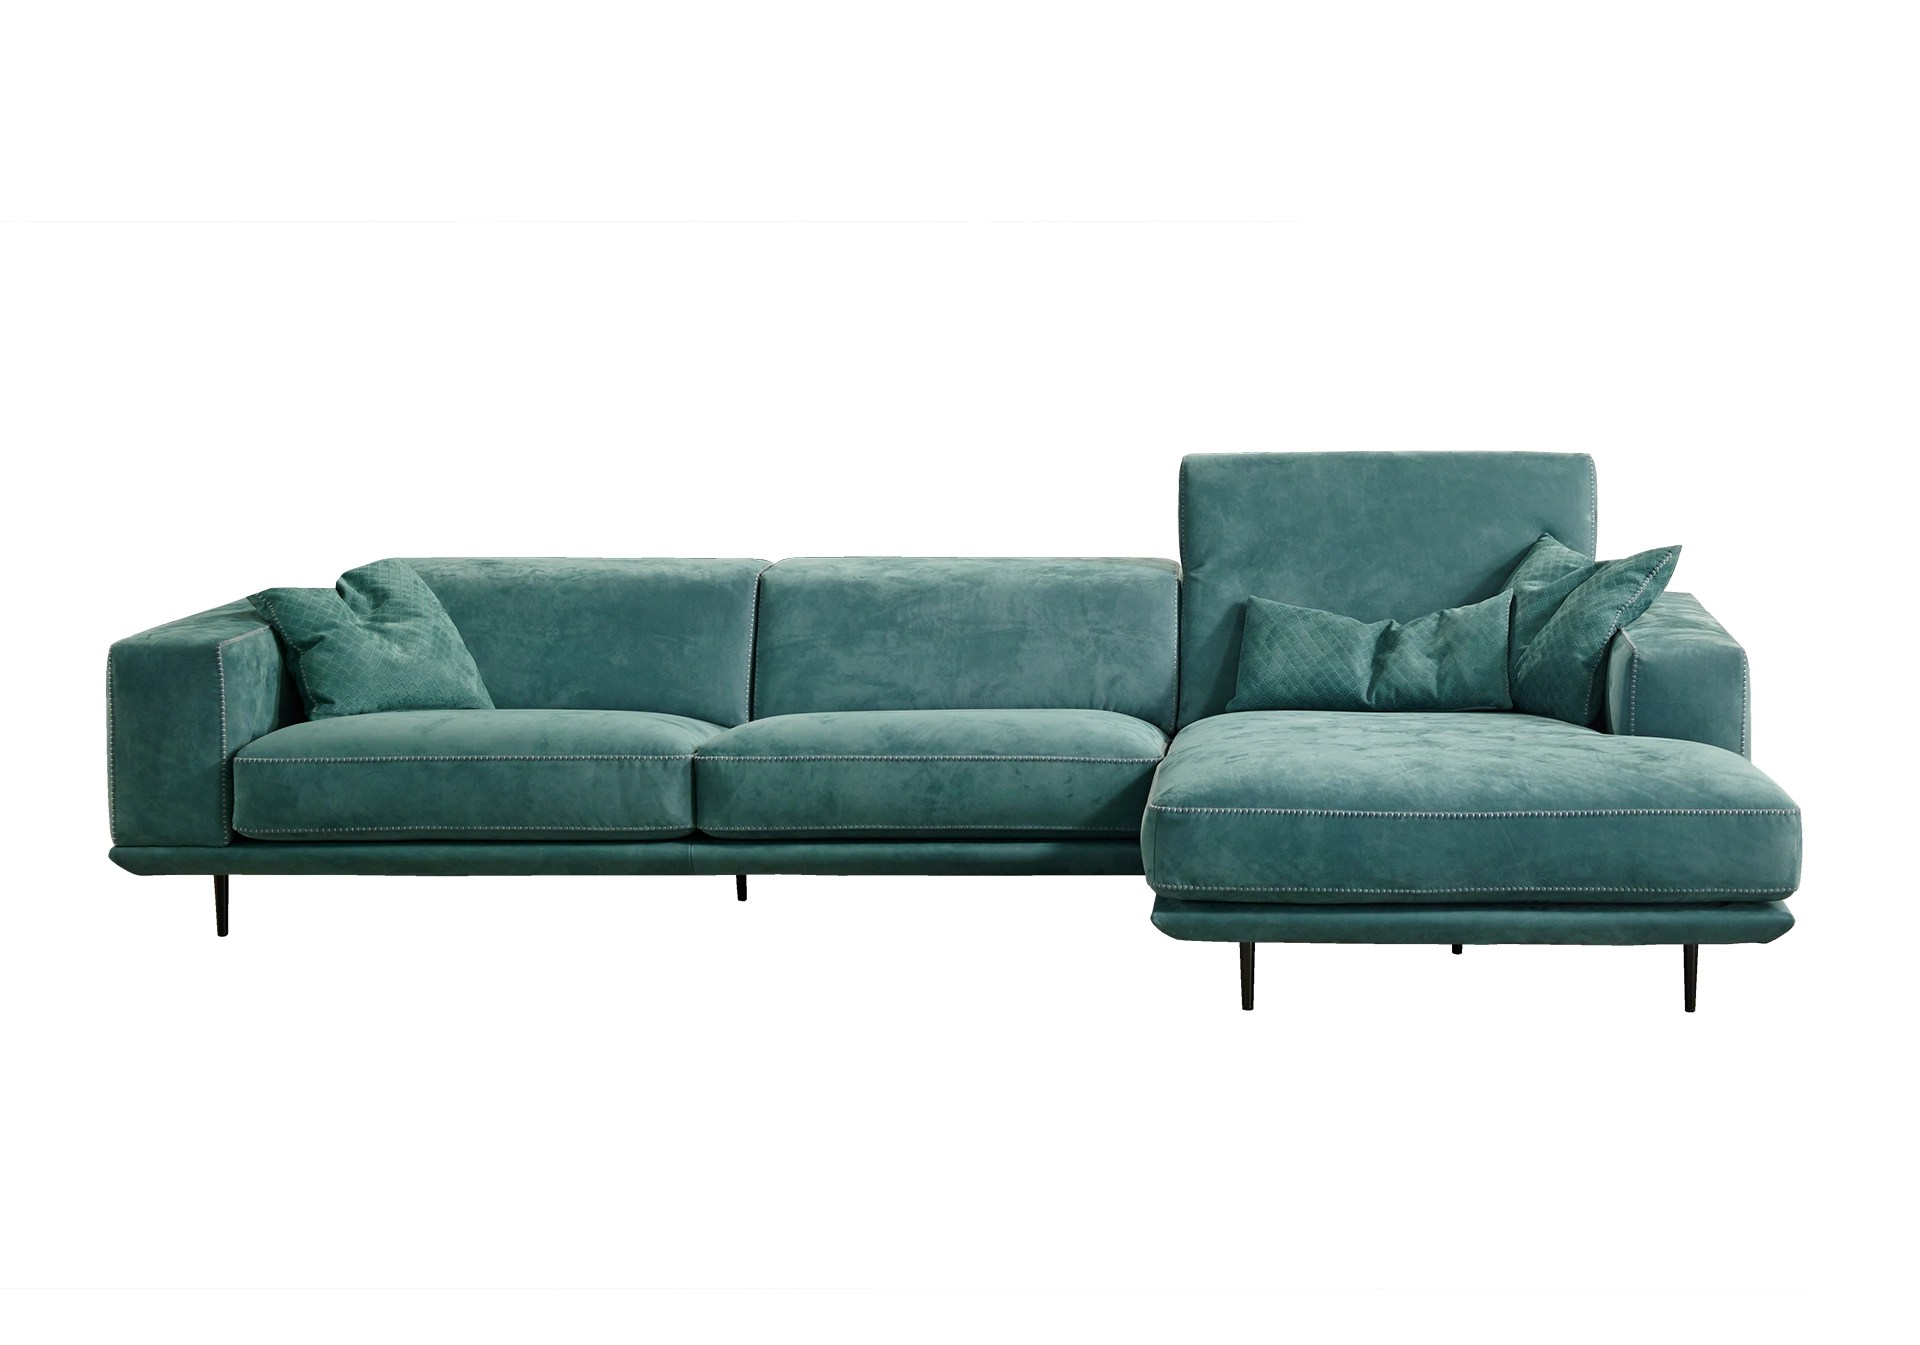 Naturmöbel Sofa Gamma Collection Gamma Arredamenti